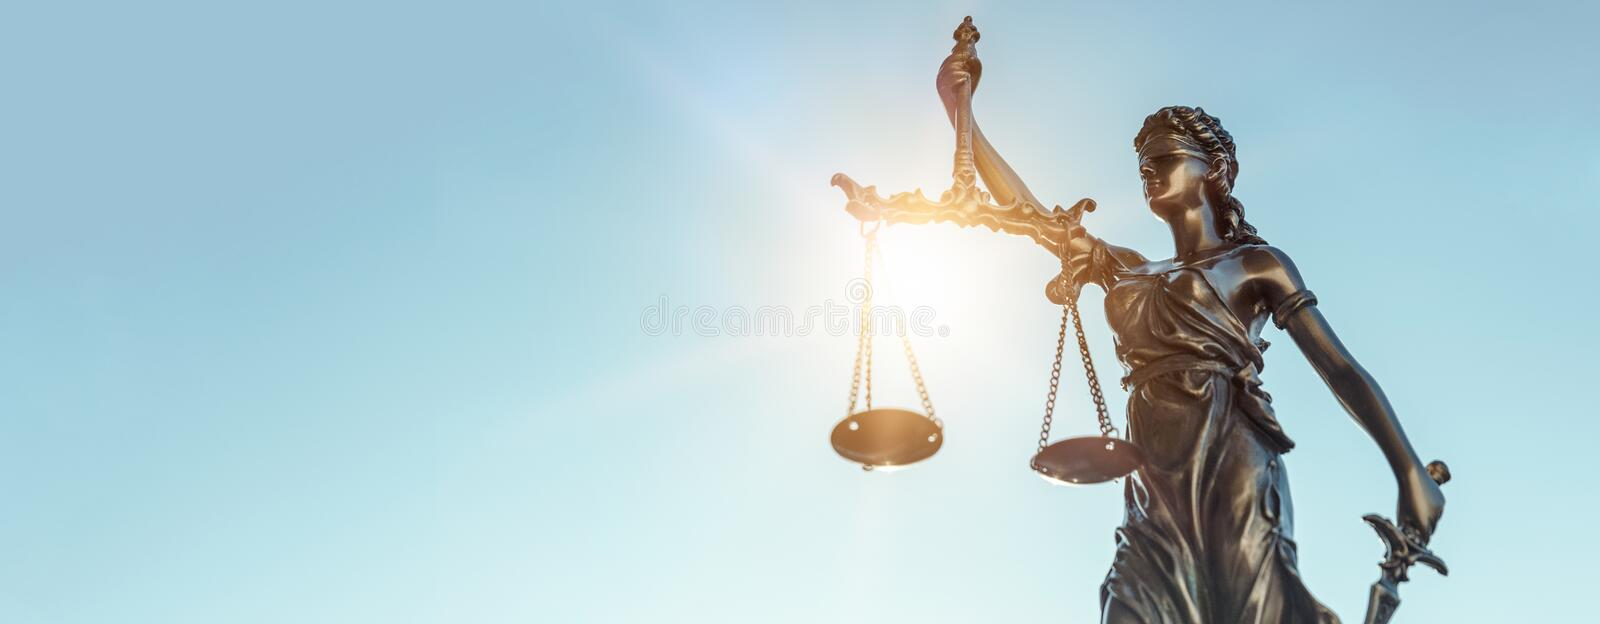 10 939 Lady Justice Photos Free Royalty Free Stock Photos From Dreamstime